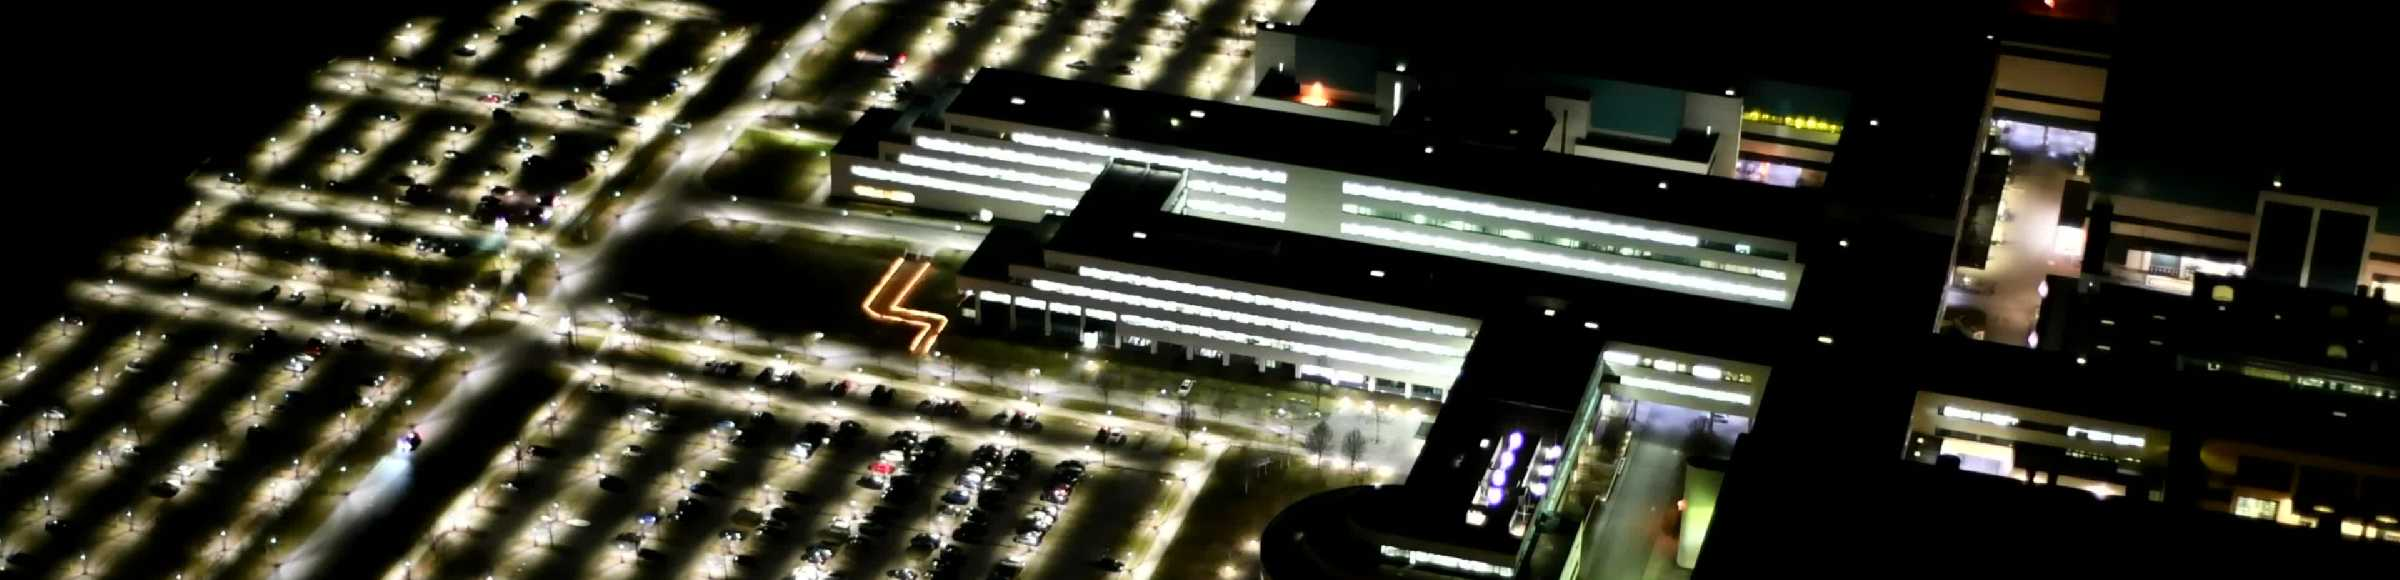 Night lighting building and production halls on the premises of GLOBALFOUNDRIES Management Services Limited Liability Company & Co. KG on Wilschdorfer Landstrasse in the district Wilschdorf in Dresden in the state Saxony, Germany